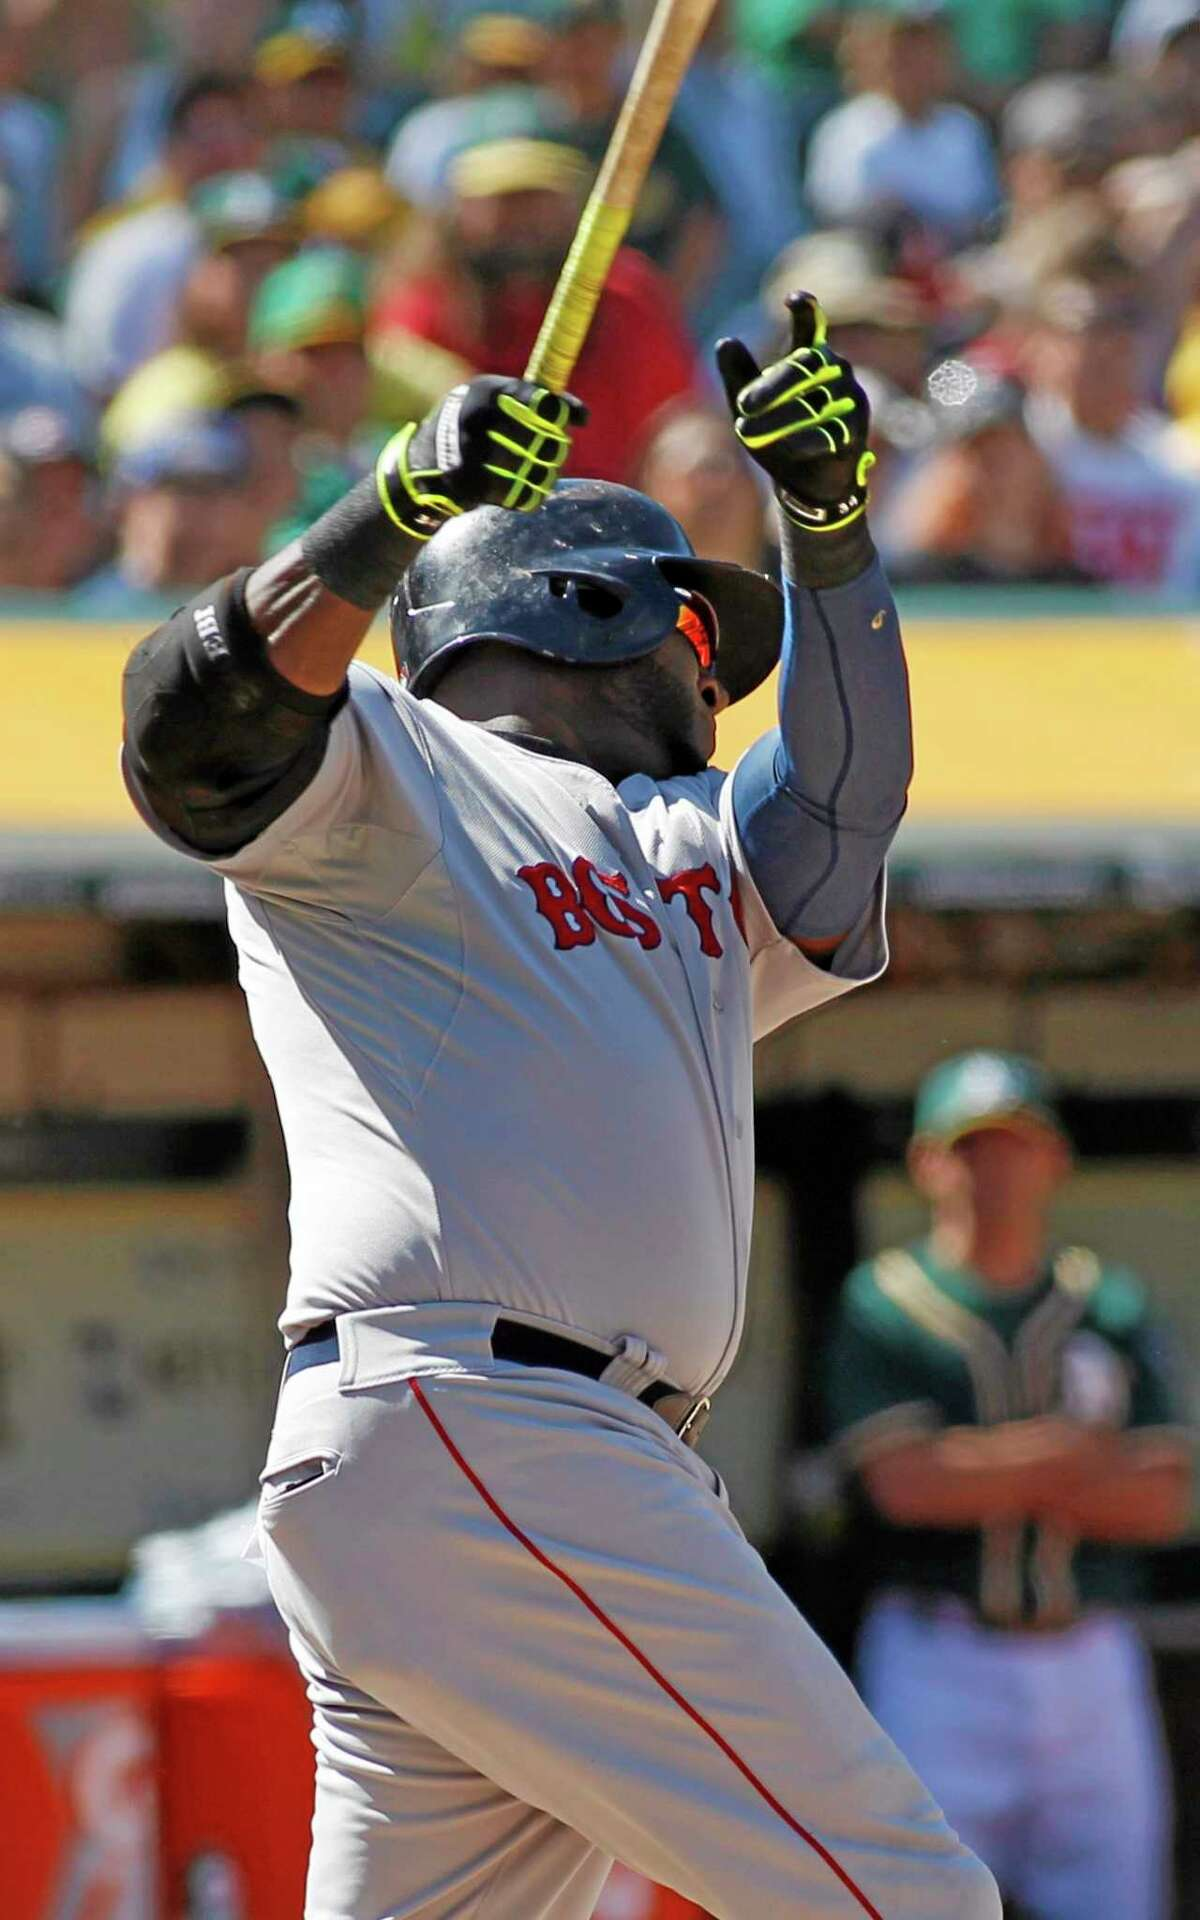 Boston designated hitter David Ortiz hits a game-winning home run against the Athletics during the tenth inning of the Red Sox's 7-6 win on Sunday in Oakland, Calif.